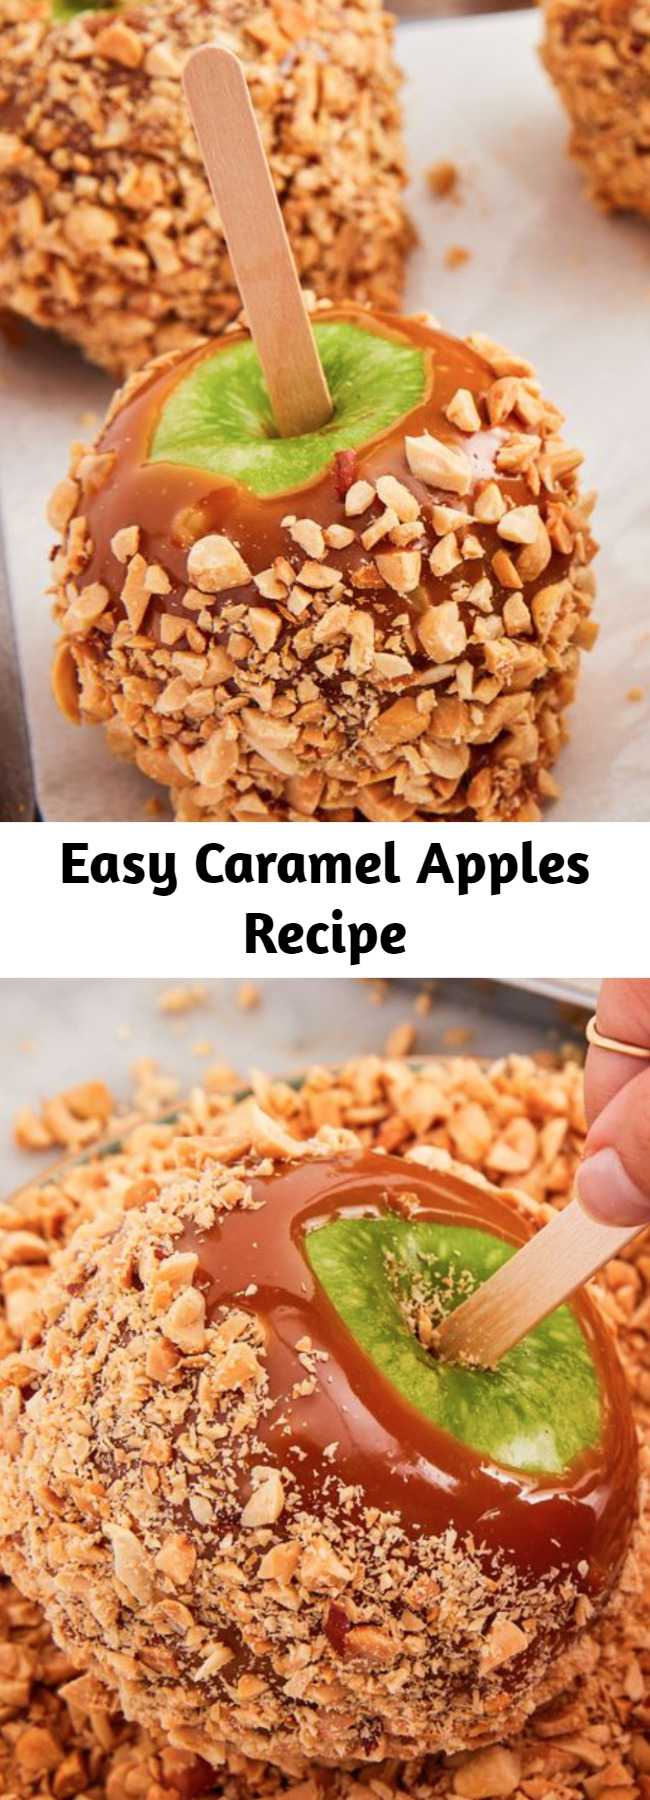 Easy Caramel Apples Recipe - Caramel apples are one of Fall's greatest pleasures. Not only are they easy to make, they're also super fun to personalize. Follow these easy step-by-step instructions and have an autumnal treat in no time.